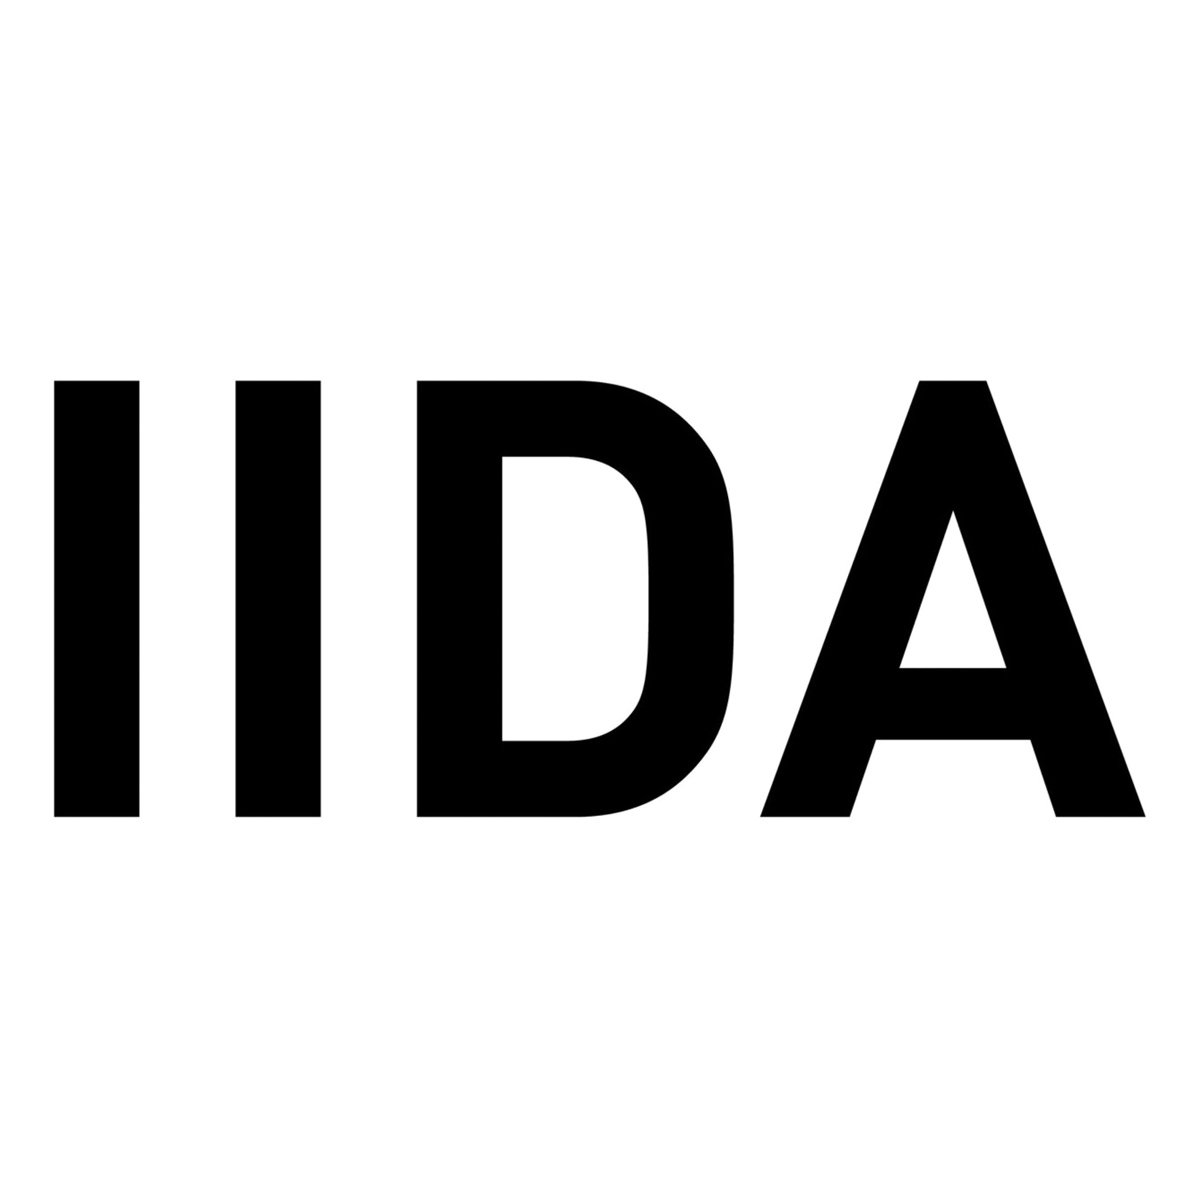 IIDA Announces 2020 Member, Student, and Educator of the Year